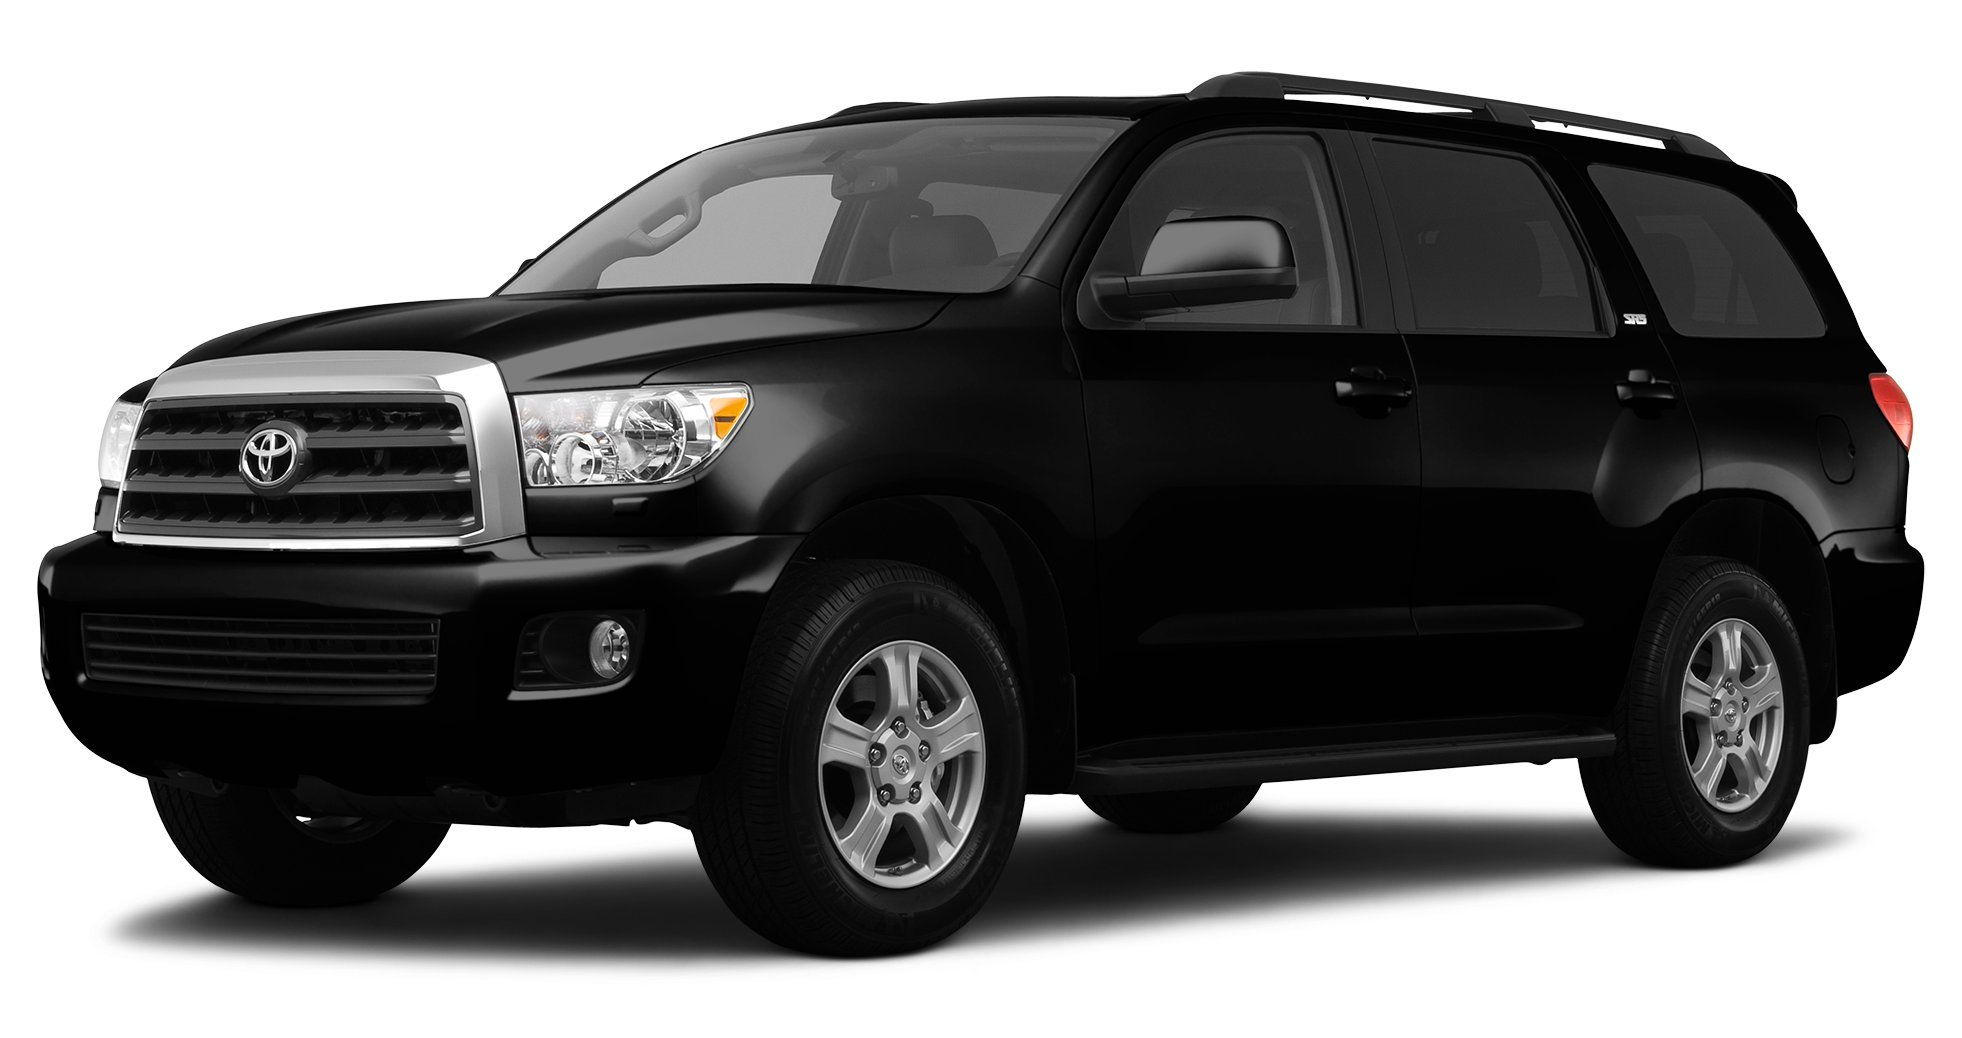 2012 chevrolet tahoe reviews images and specs vehicles. Black Bedroom Furniture Sets. Home Design Ideas